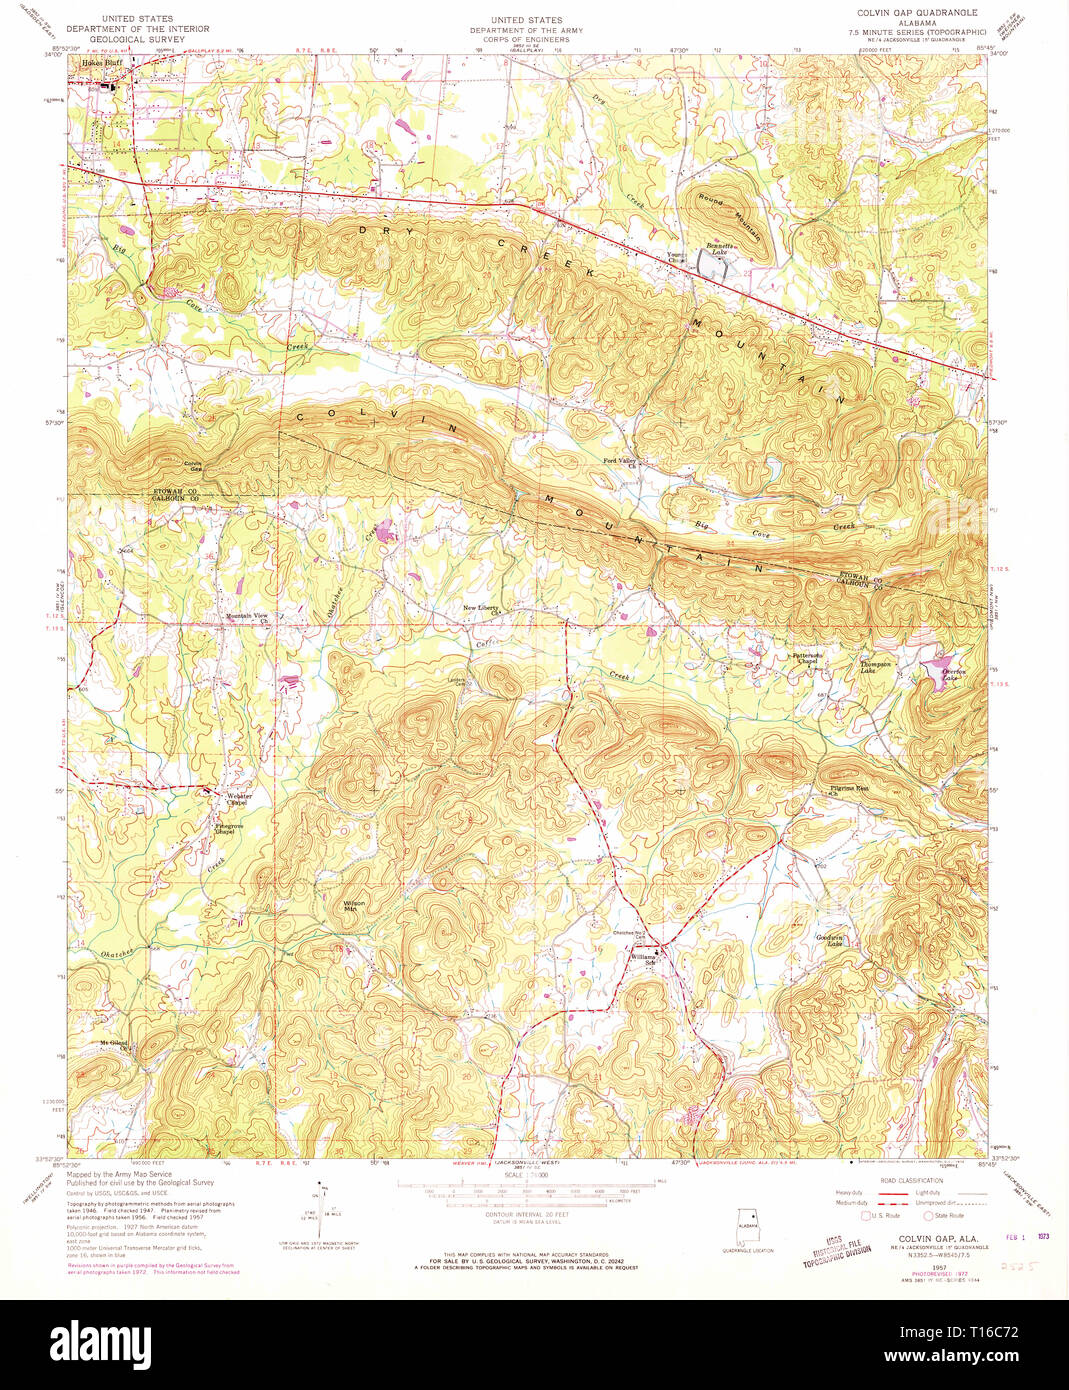 USGS TOPO Map Alabama AL Colvin Gap 303571 1957 24000 - Stock Image